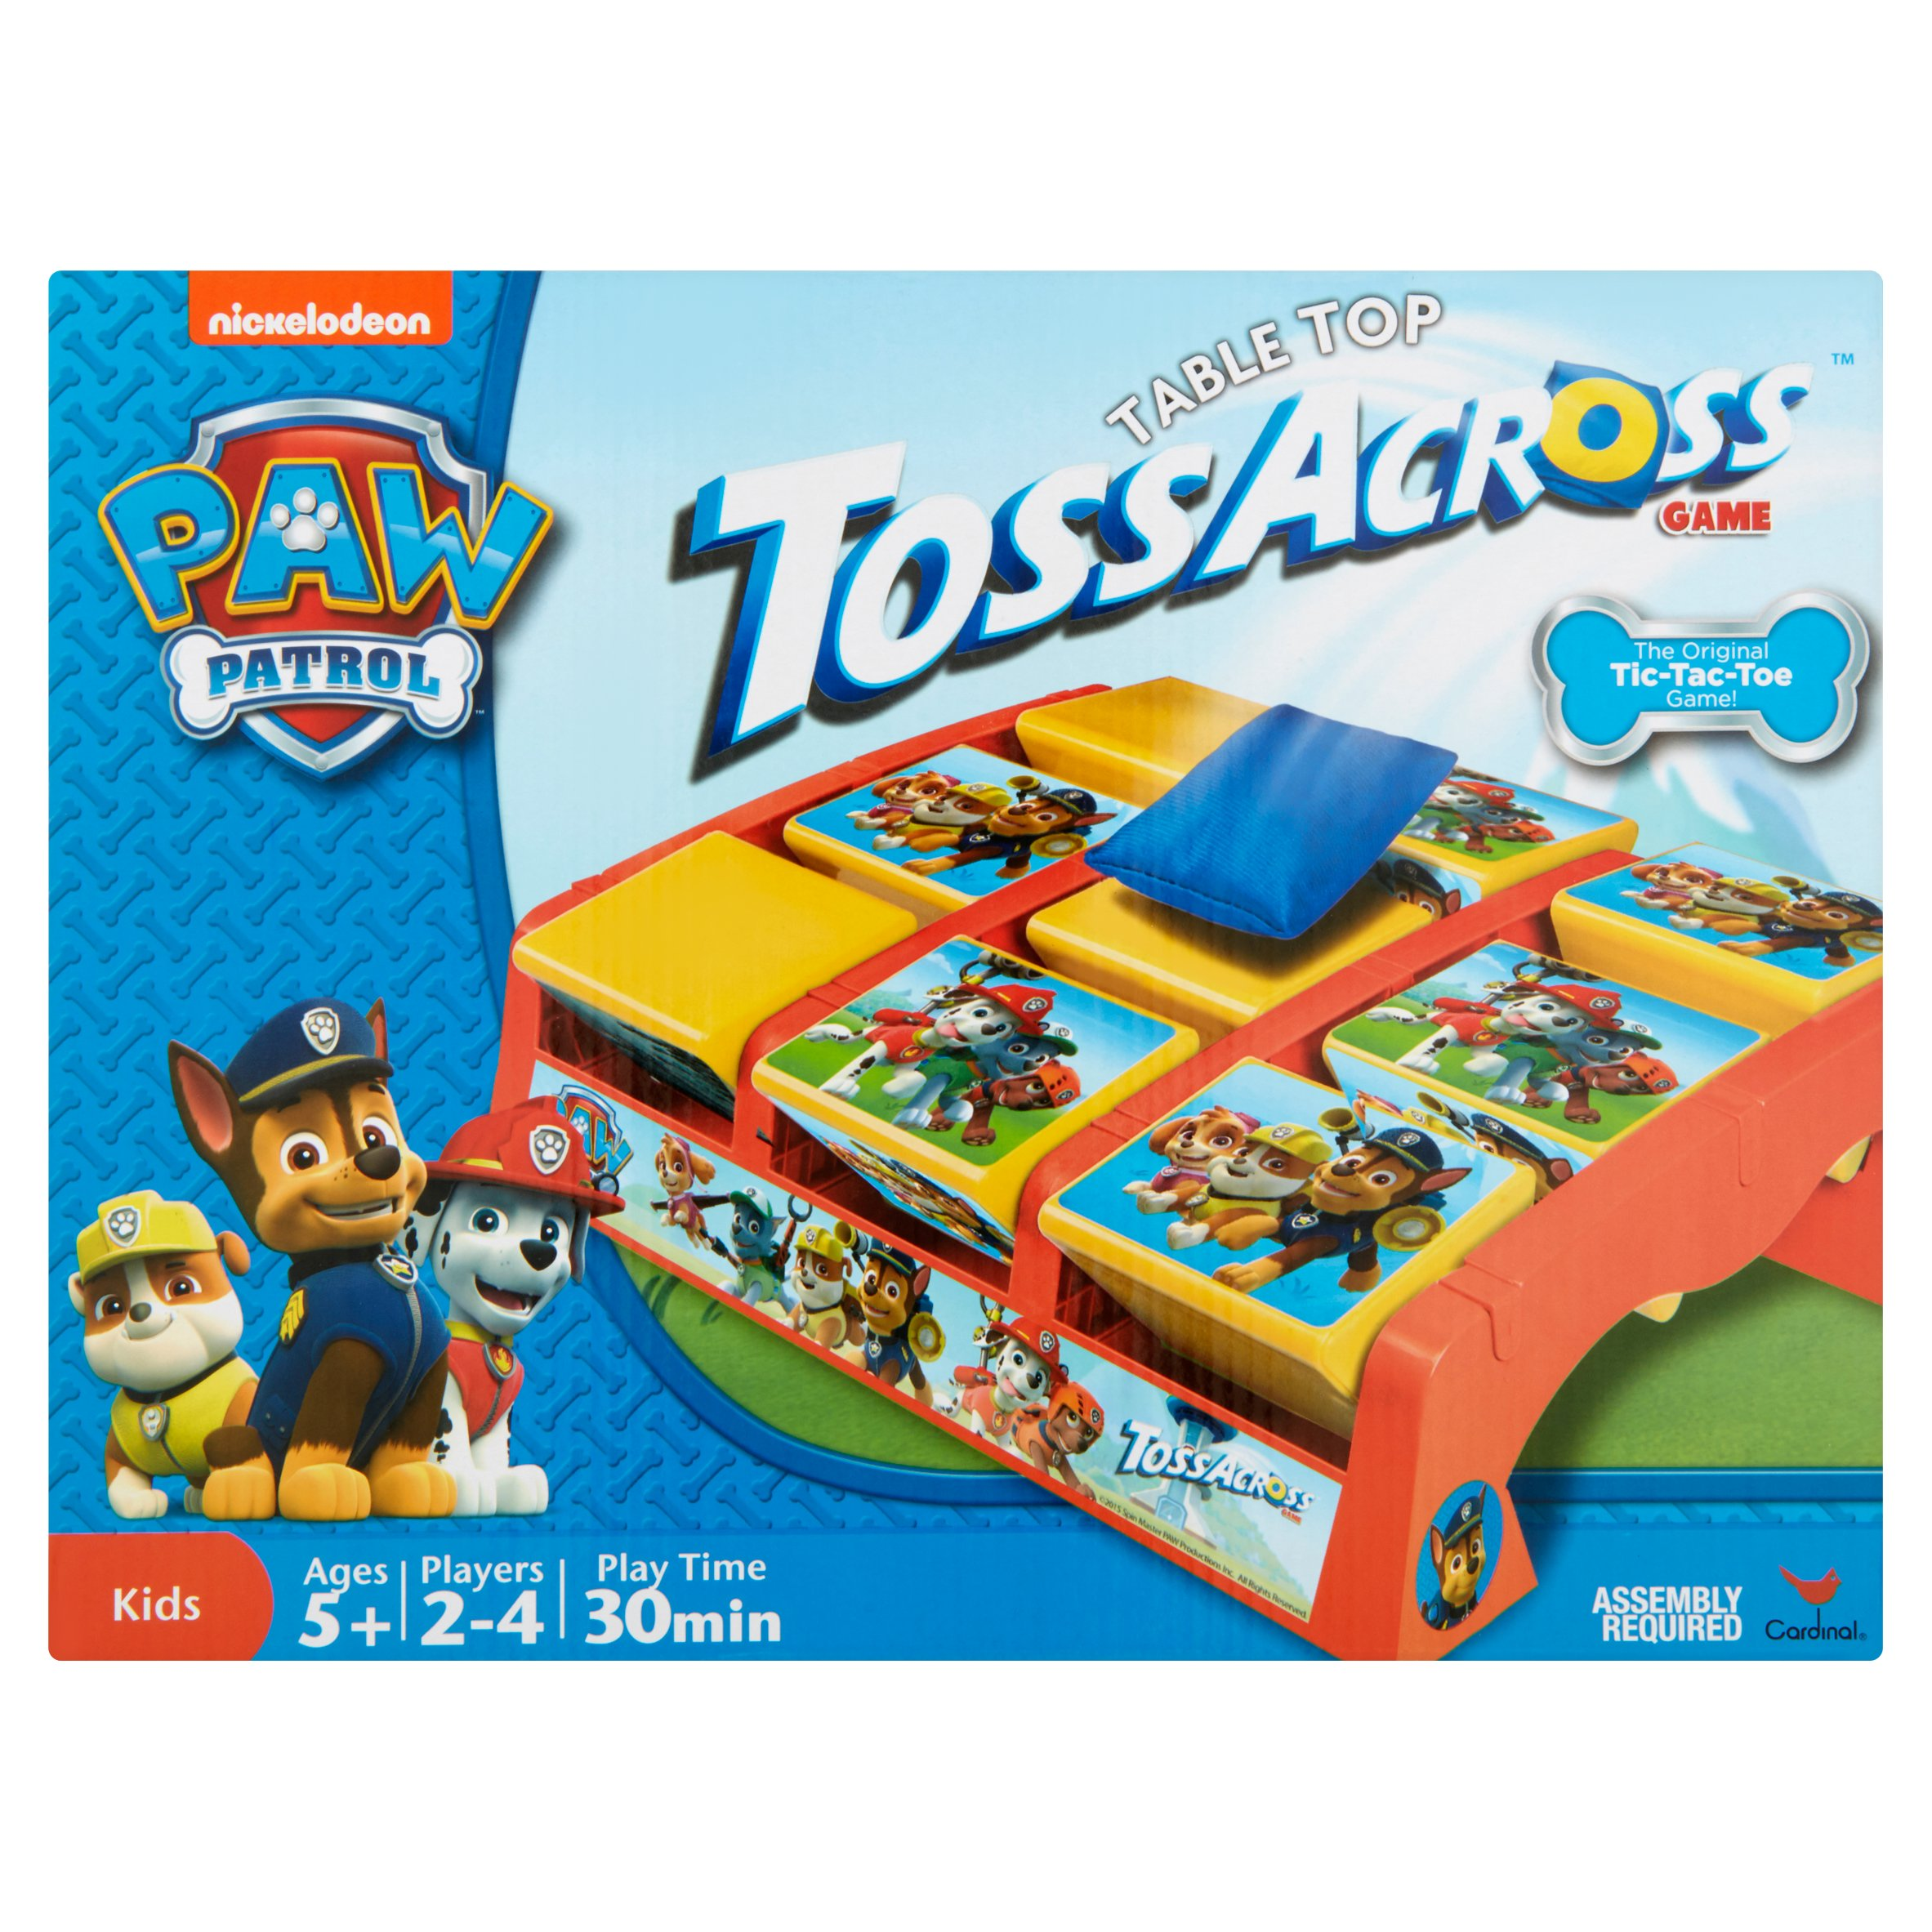 Cardinal Paw Patrol Table Top TossAcross Game Ages 5+